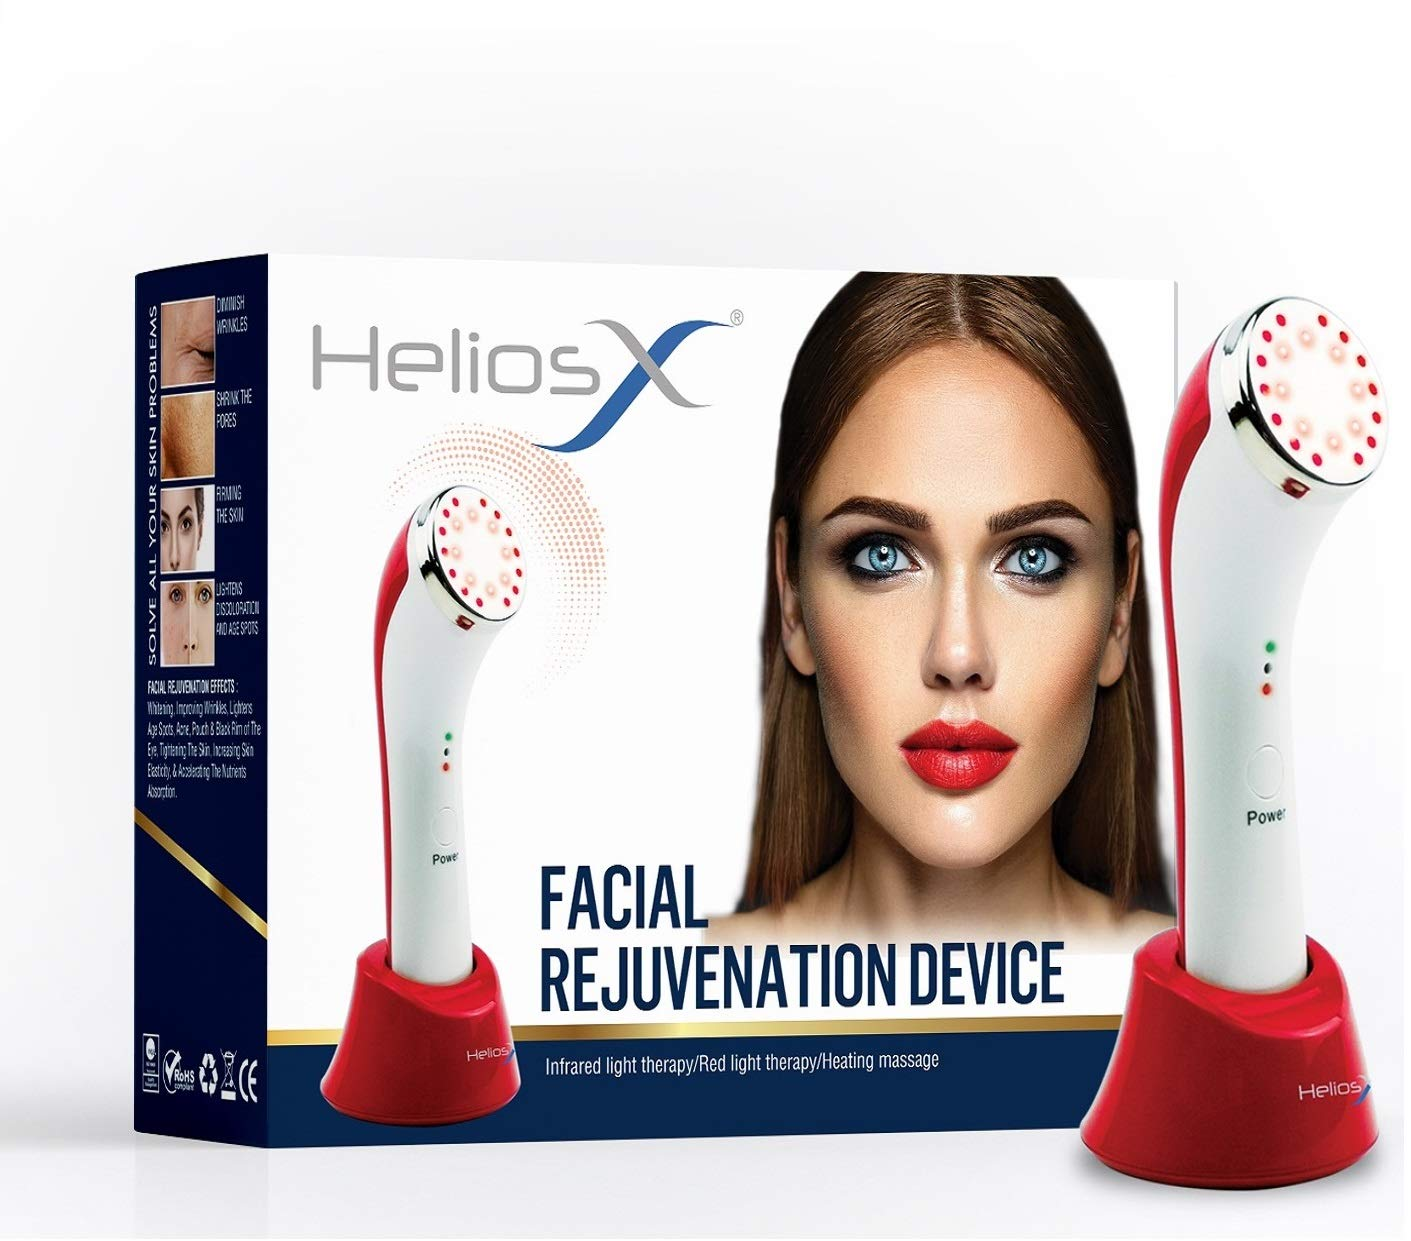 Helios X Facial Rejuvenation LED Infrared Light & Heat Therapy 3-In-1 Device for wrinkles, skin tightening, and collagen production